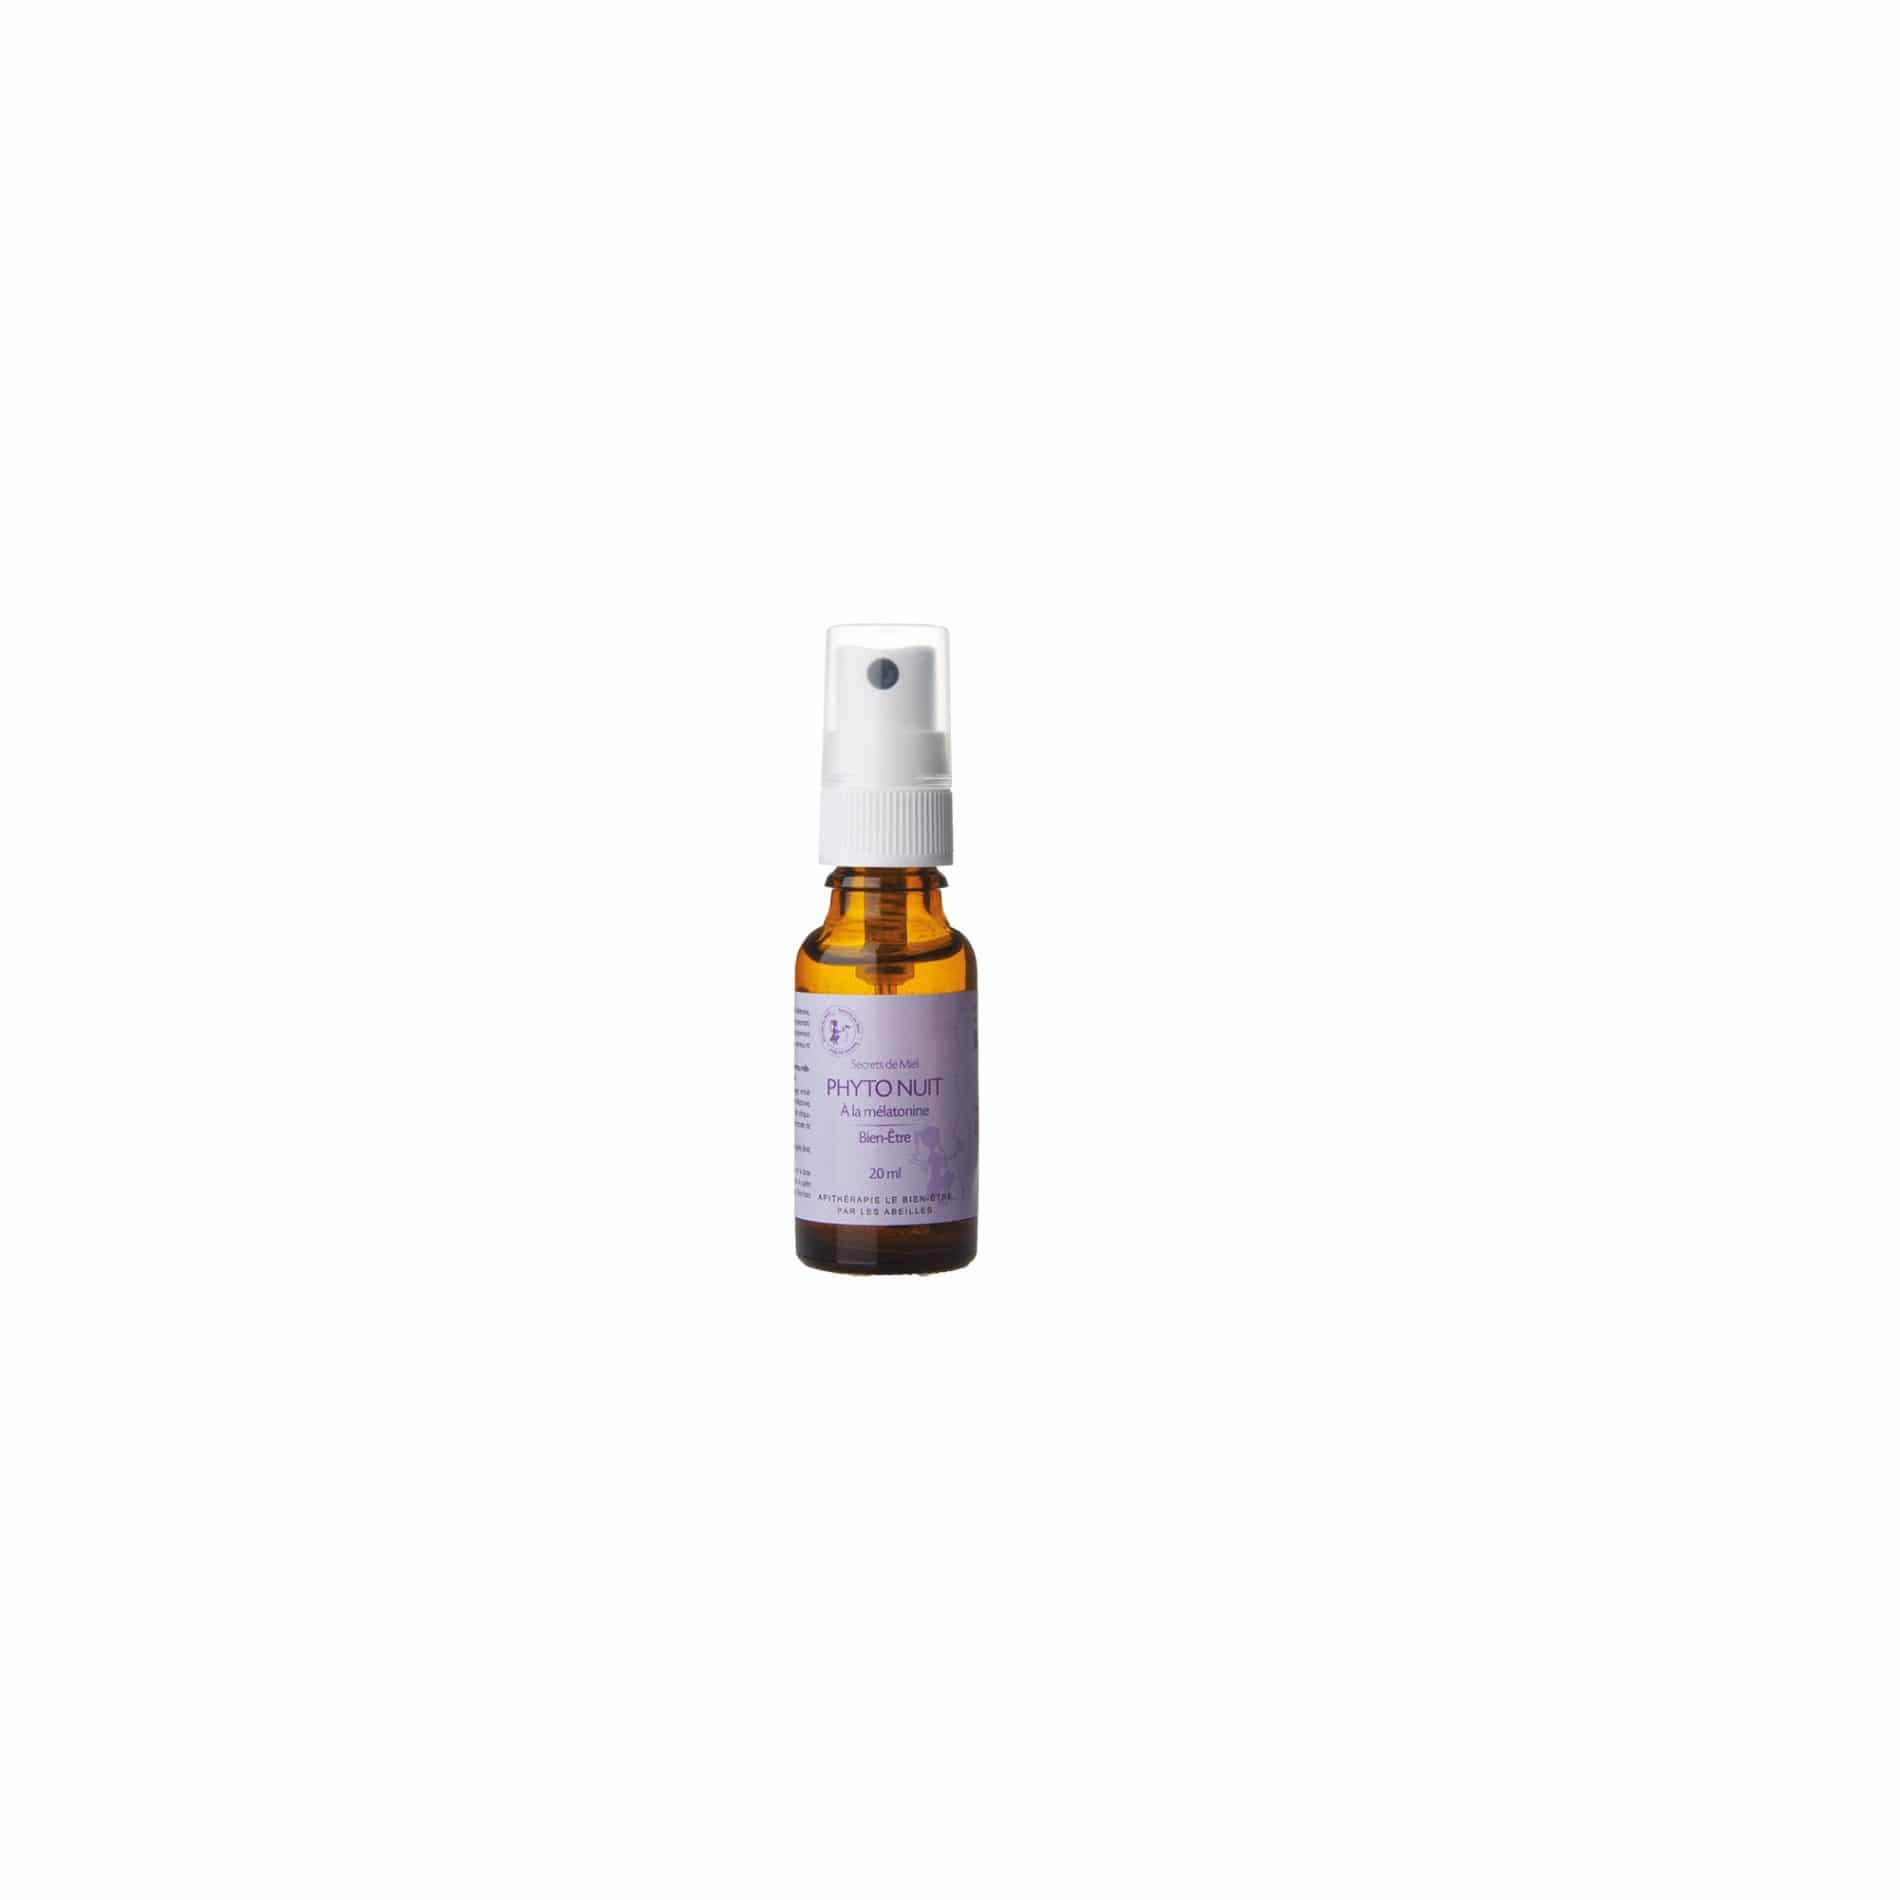 Spray Phyto Nuit - Vitamines - Réduire la fatigue - Produit naturel - Secrets de Miel